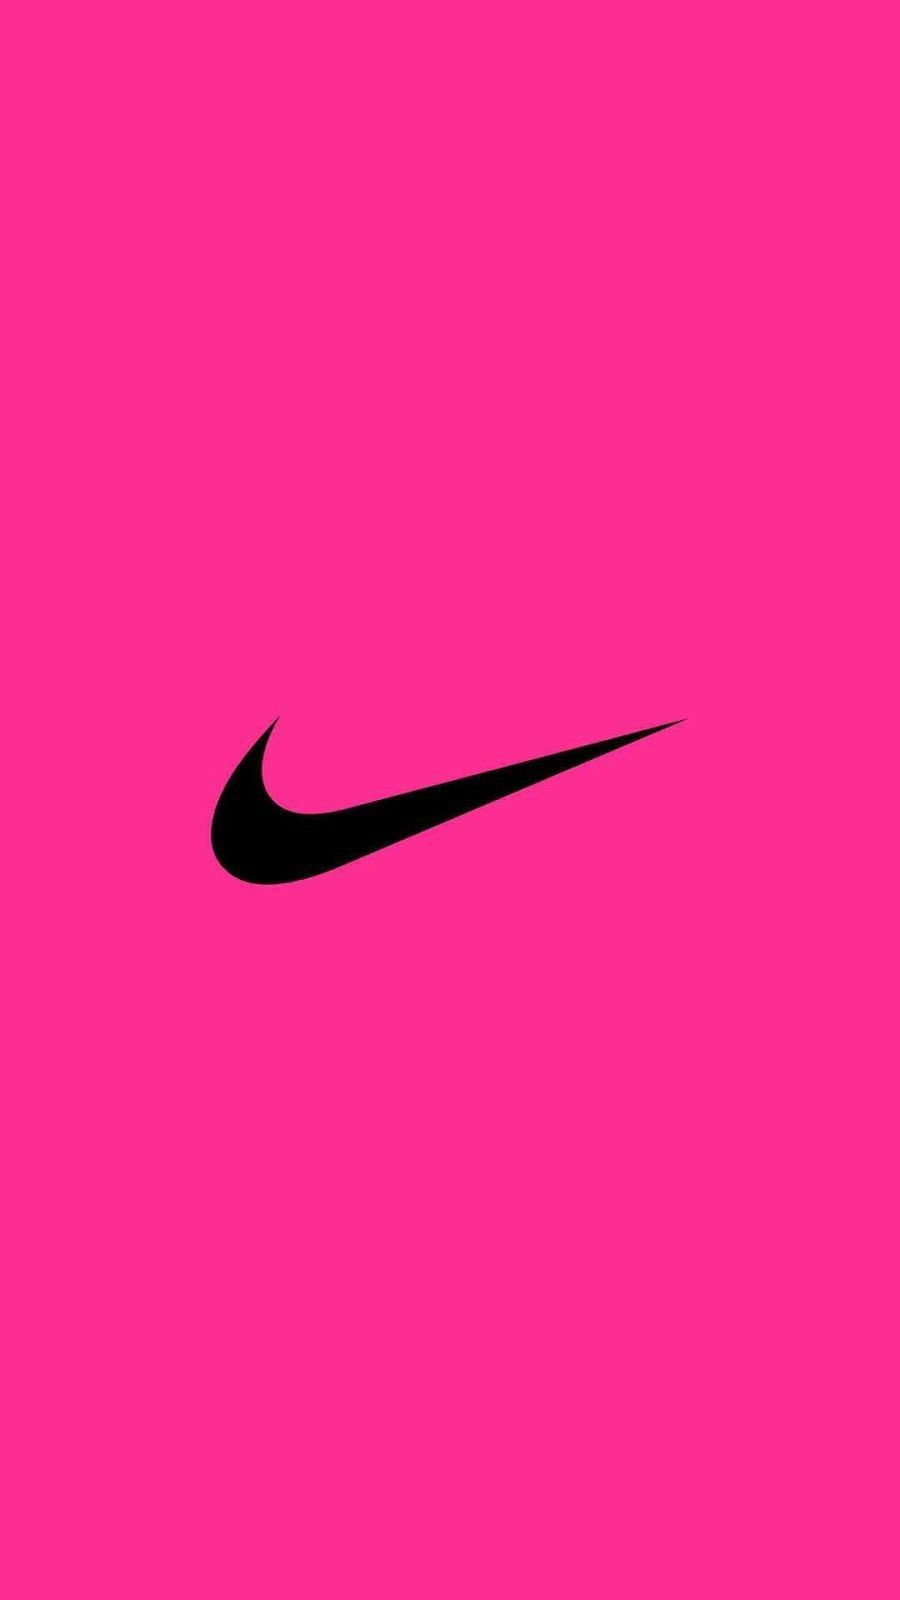 Nike Iphone Wallpapers Hd Pink Nike Wallpaper Nike Wallpaper Nike Logo Wallpapers